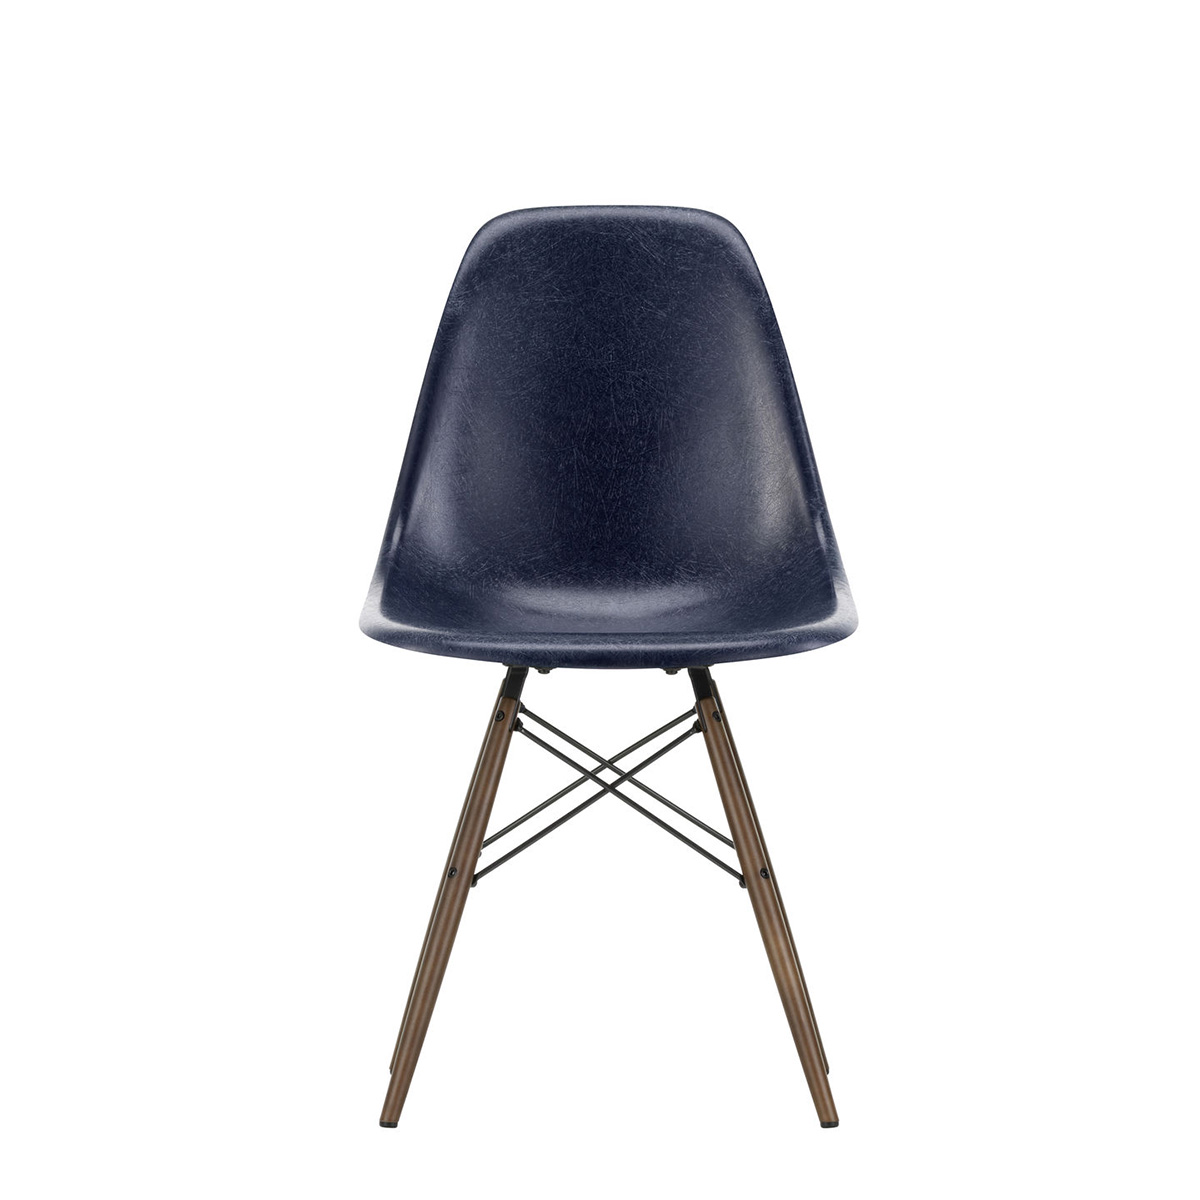 gallery-13425-for-VITRA0098